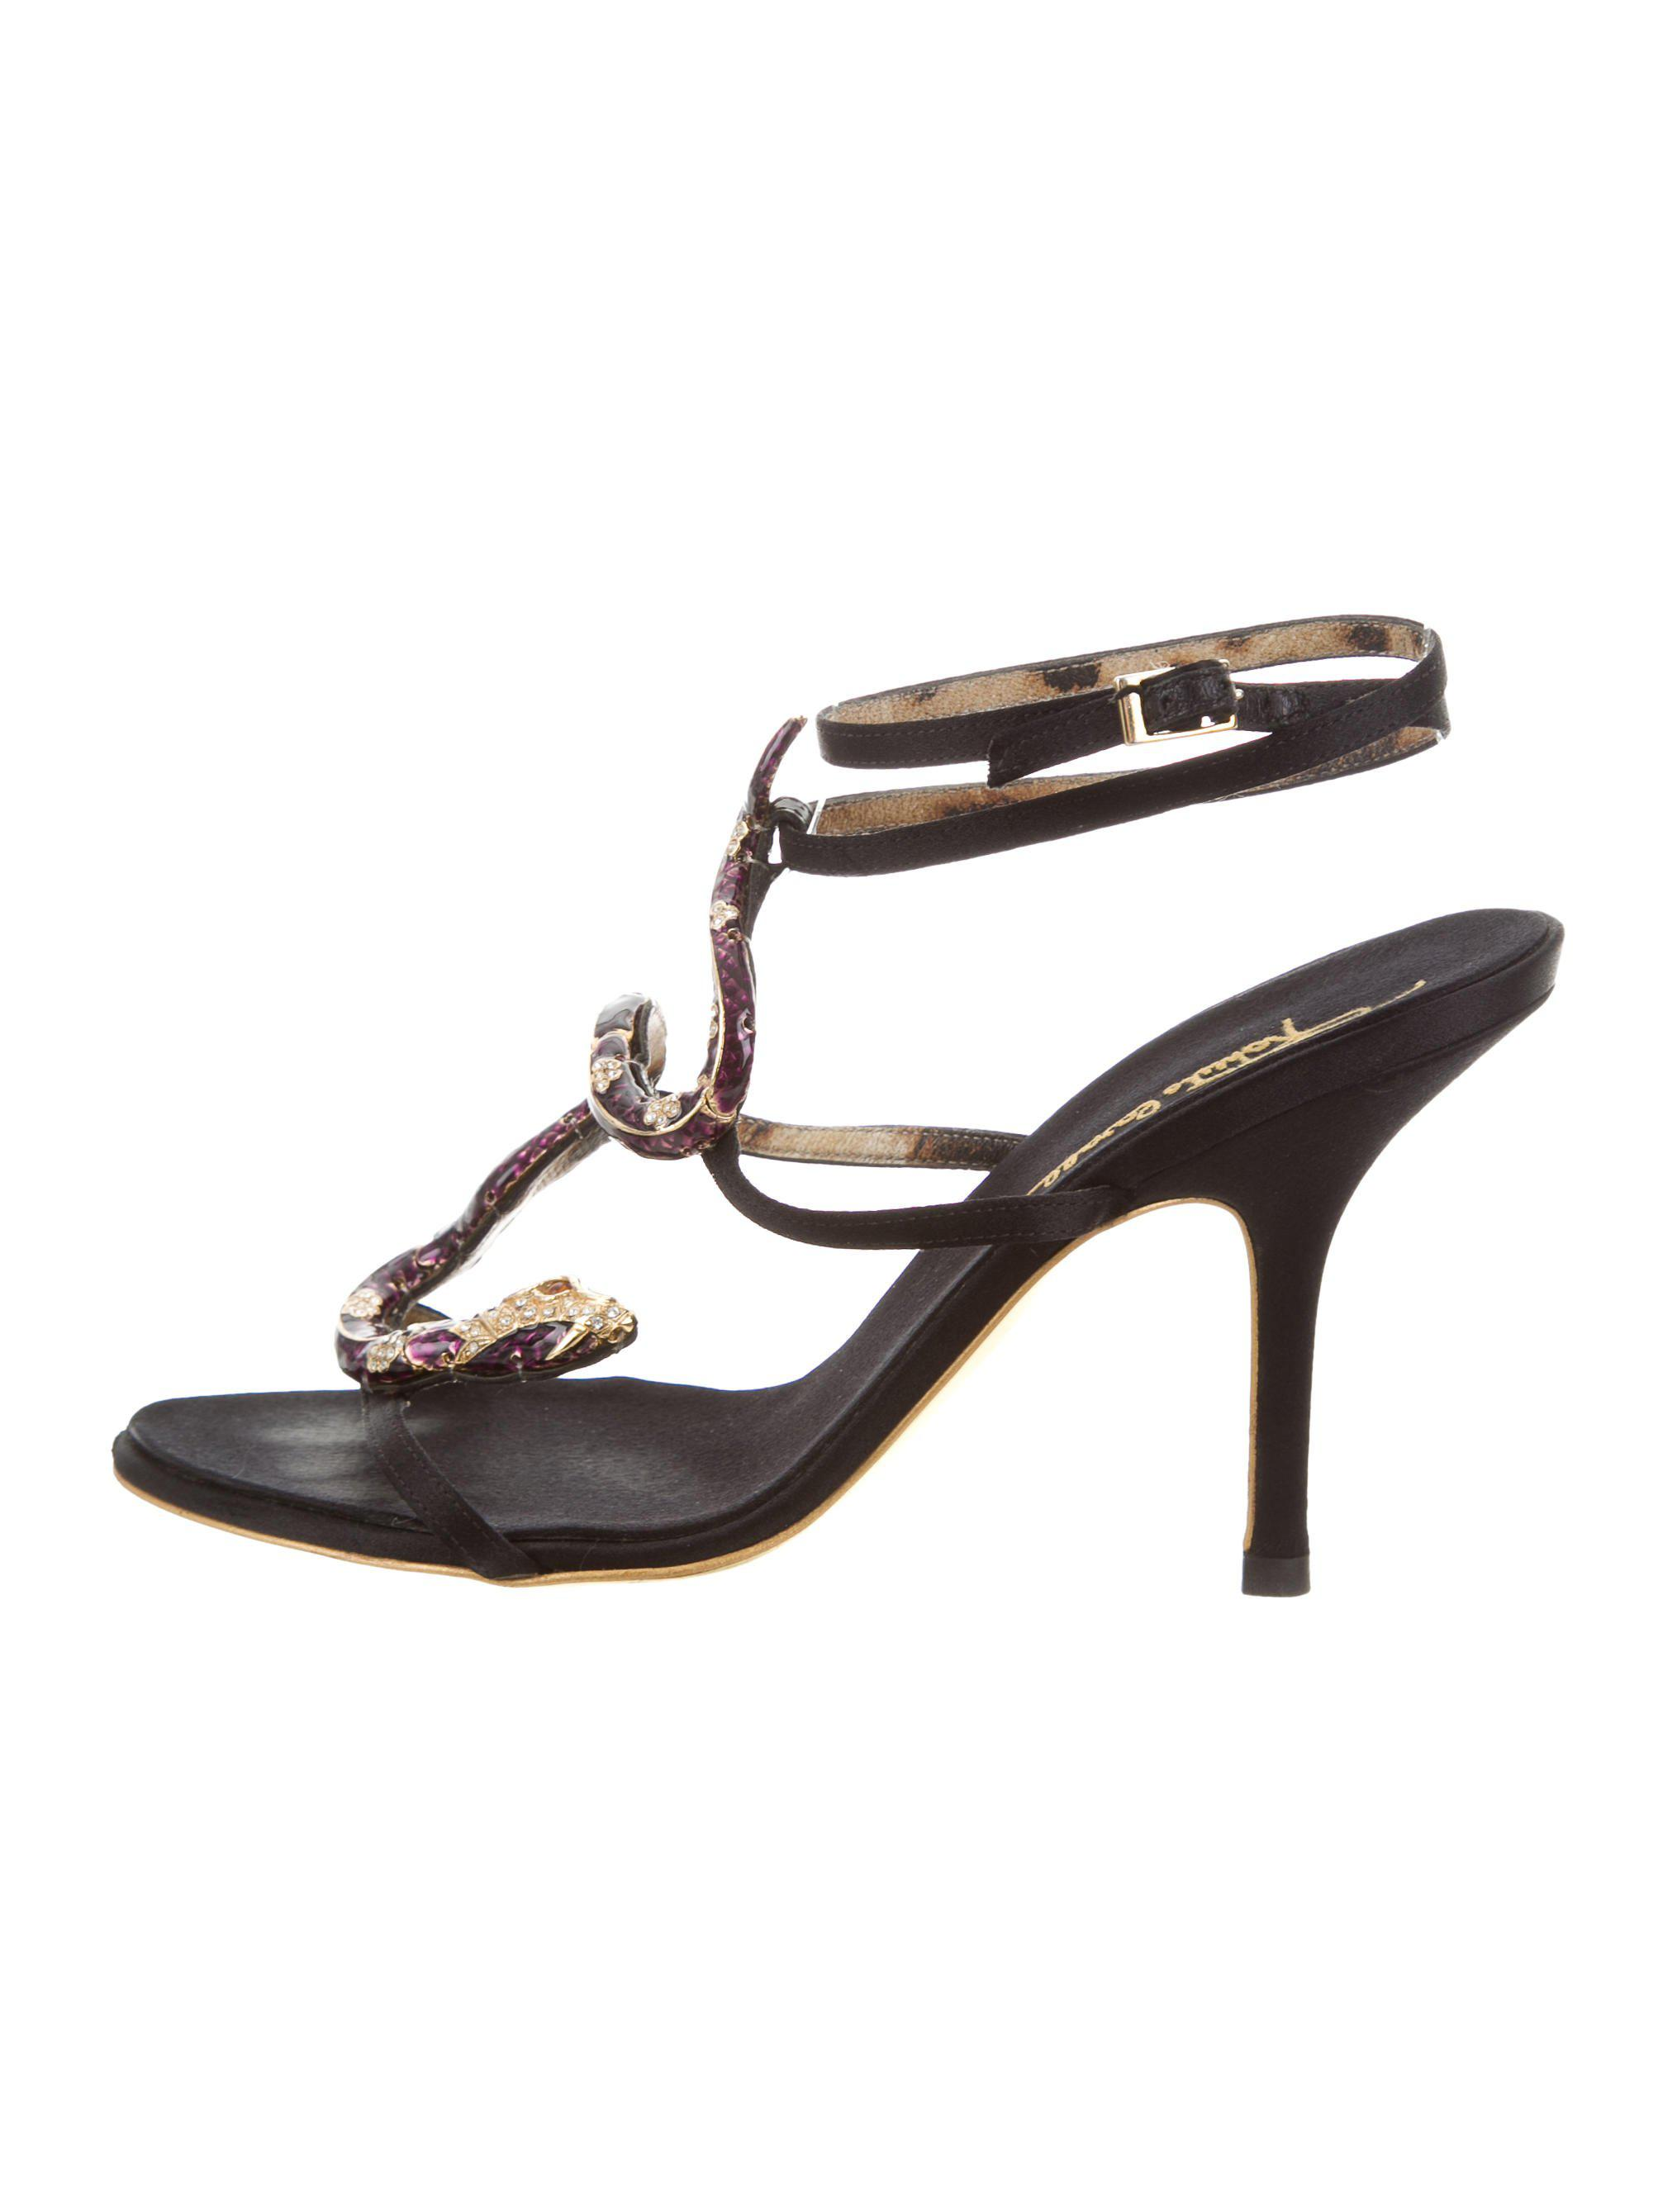 sast for sale limited edition cheap price Roberto Cavalli Metallic Ankle-Strap Sandals cheap sale countdown package discount cost fDw7FDB4R